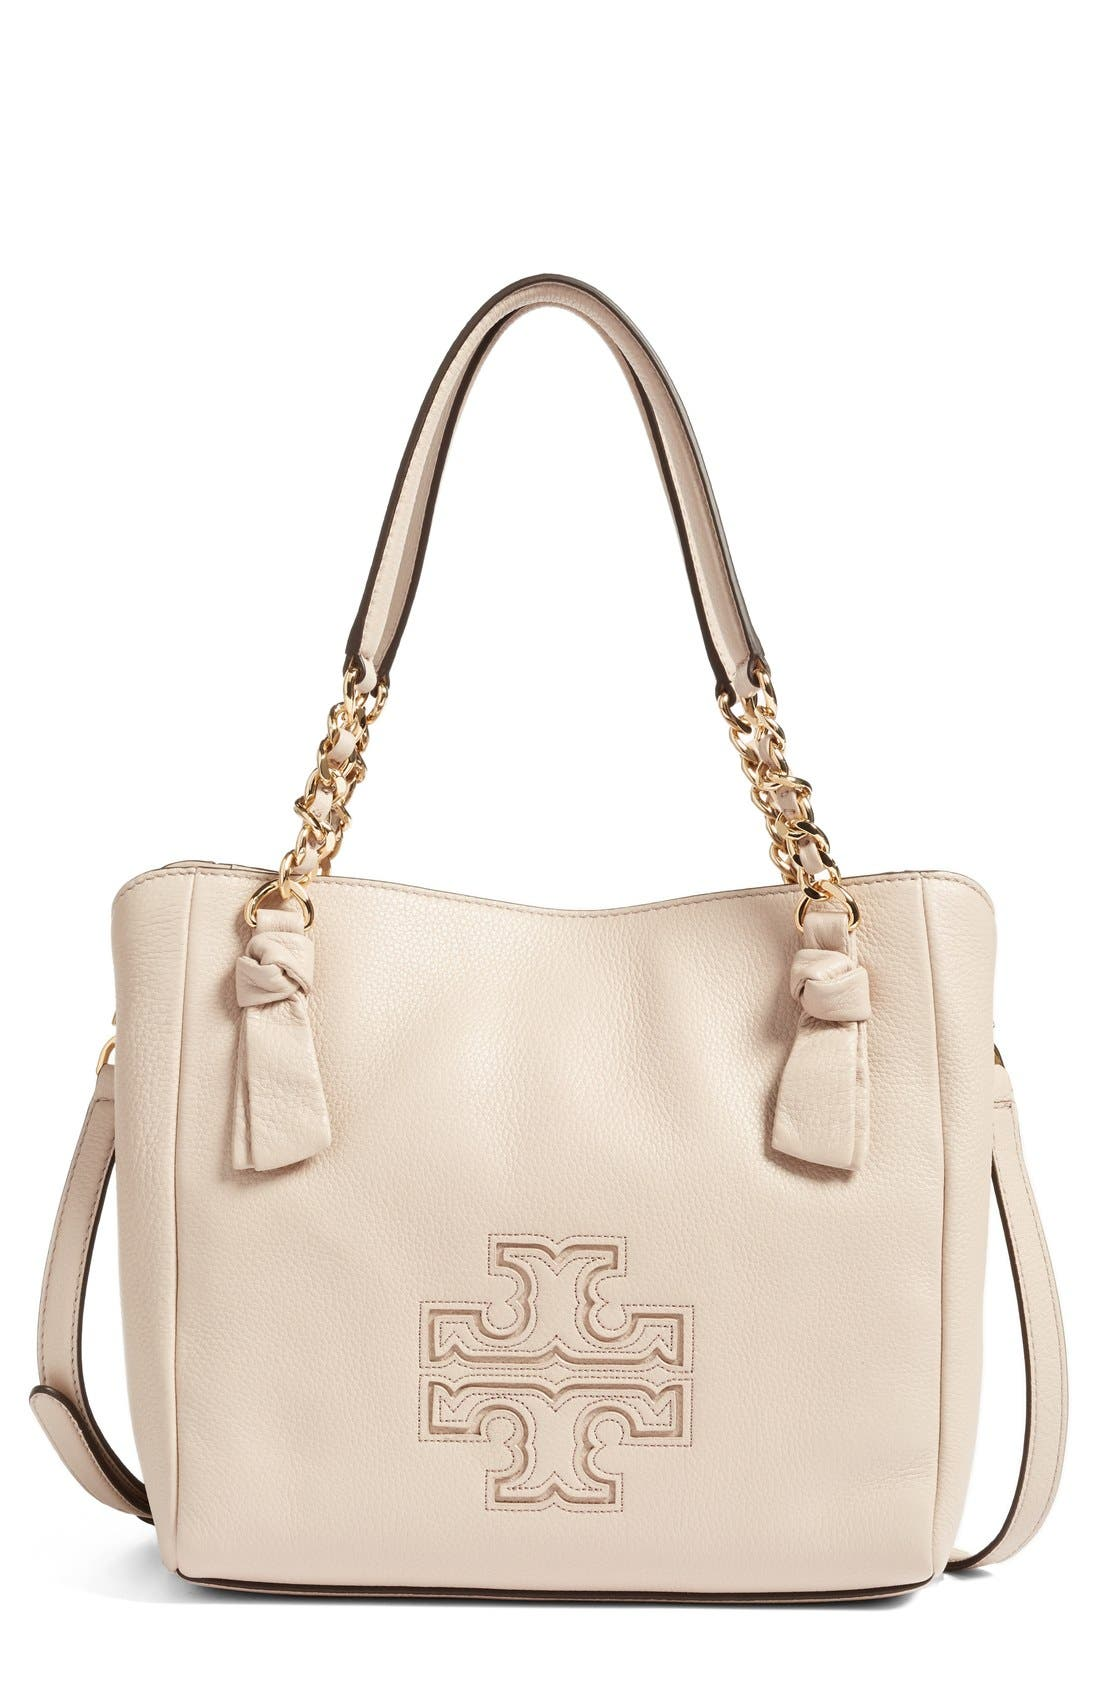 Main Image - Tory Burch Small Harper Leather Satchel